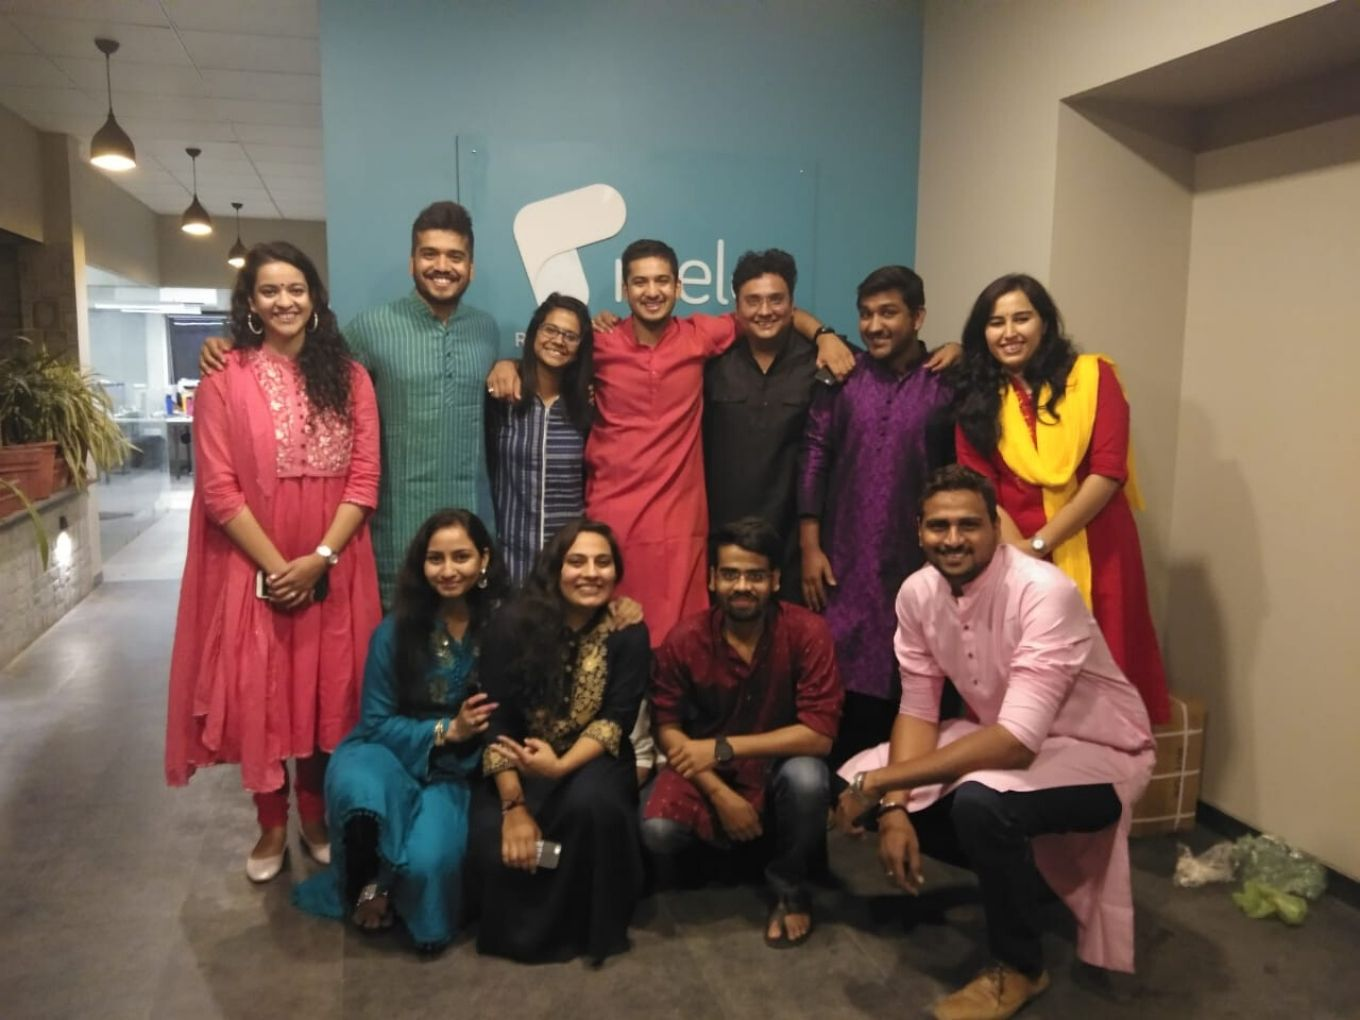 Reelo - Can Reelo's Loyalty SaaS Solution Convince India's Tech-Shy SMBs?